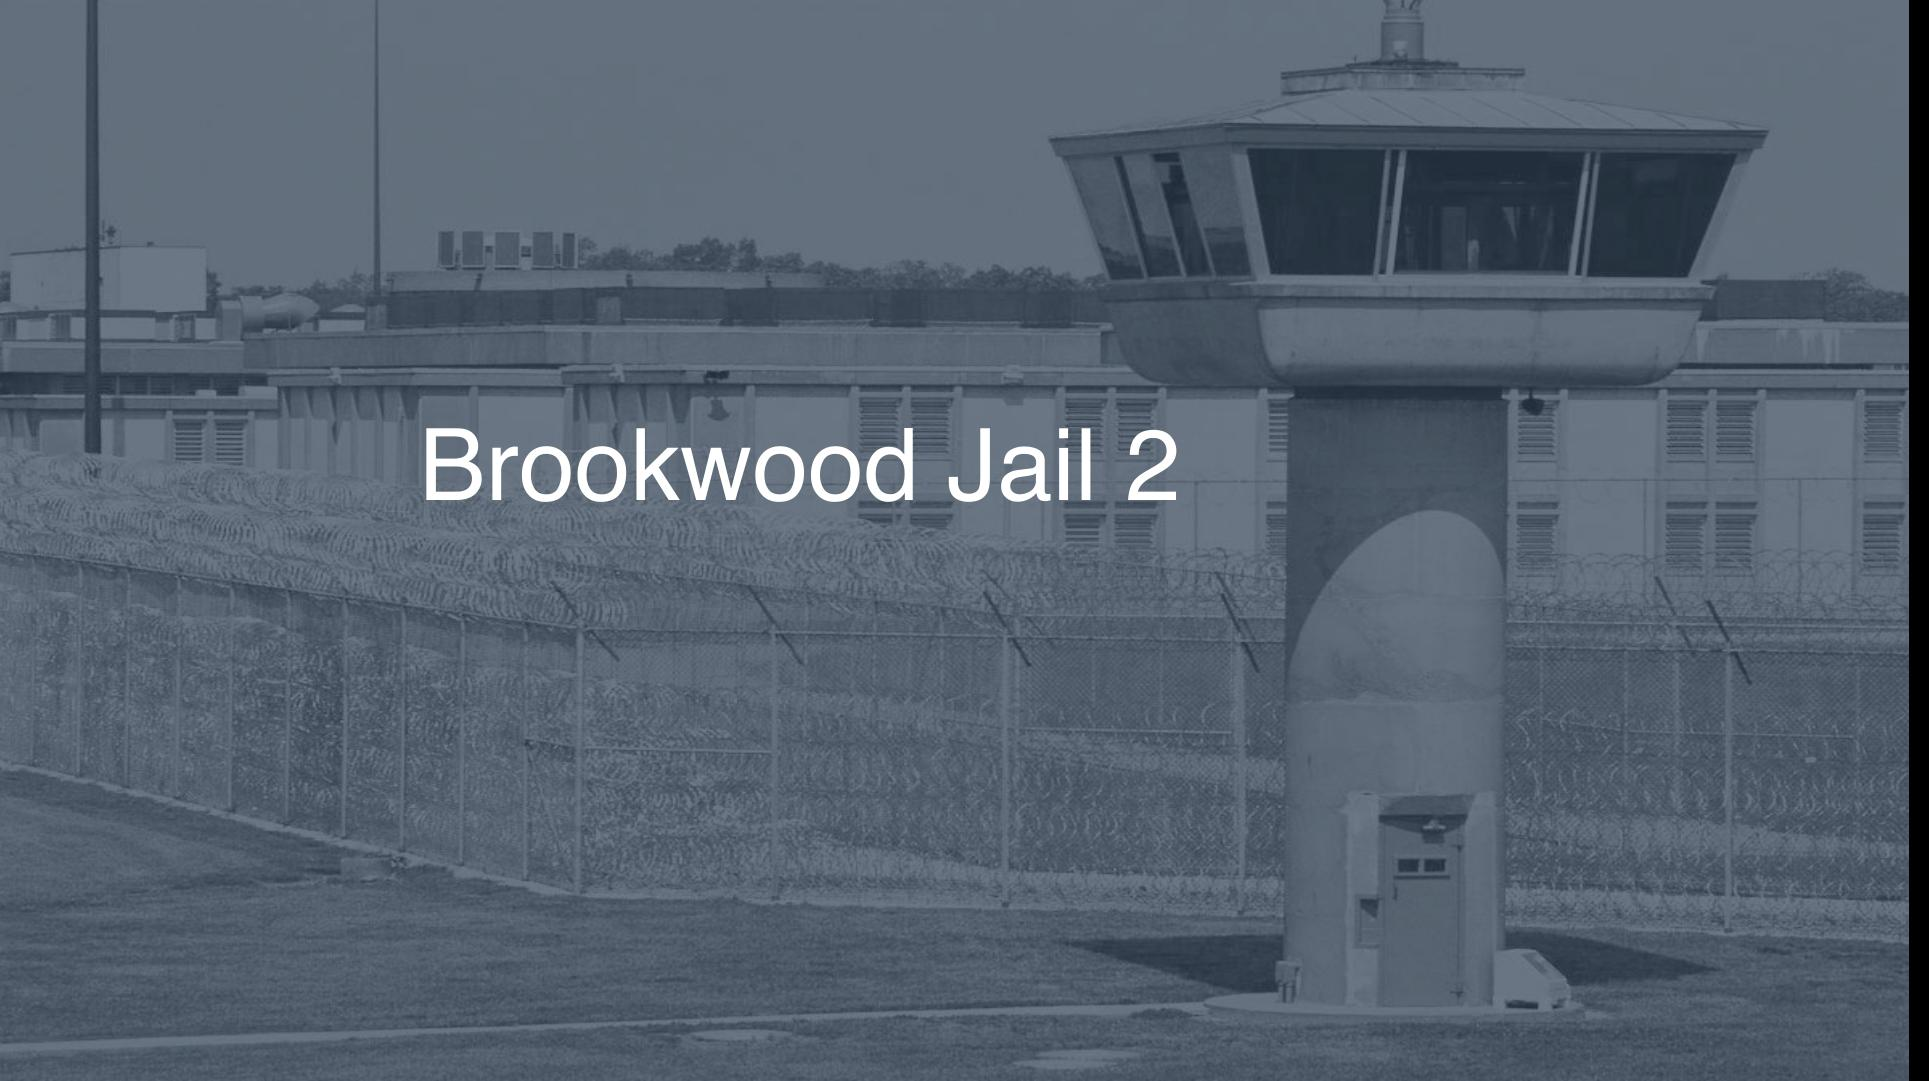 Brookwood Jail correctional facility picture